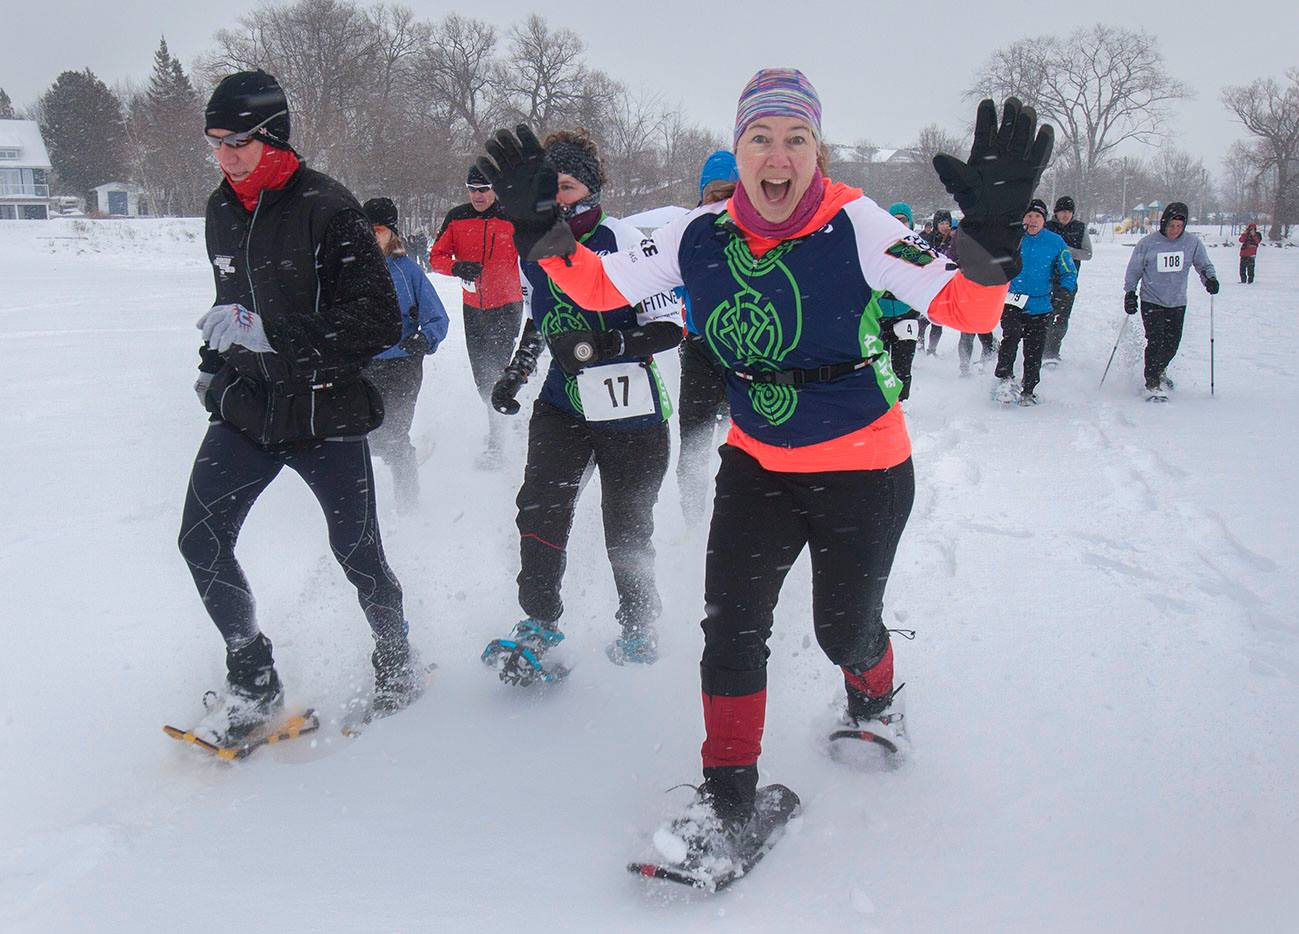 Snowshoe Kawartha event in Fenelon Falls showcases Kawartha Lakes as all-season destination